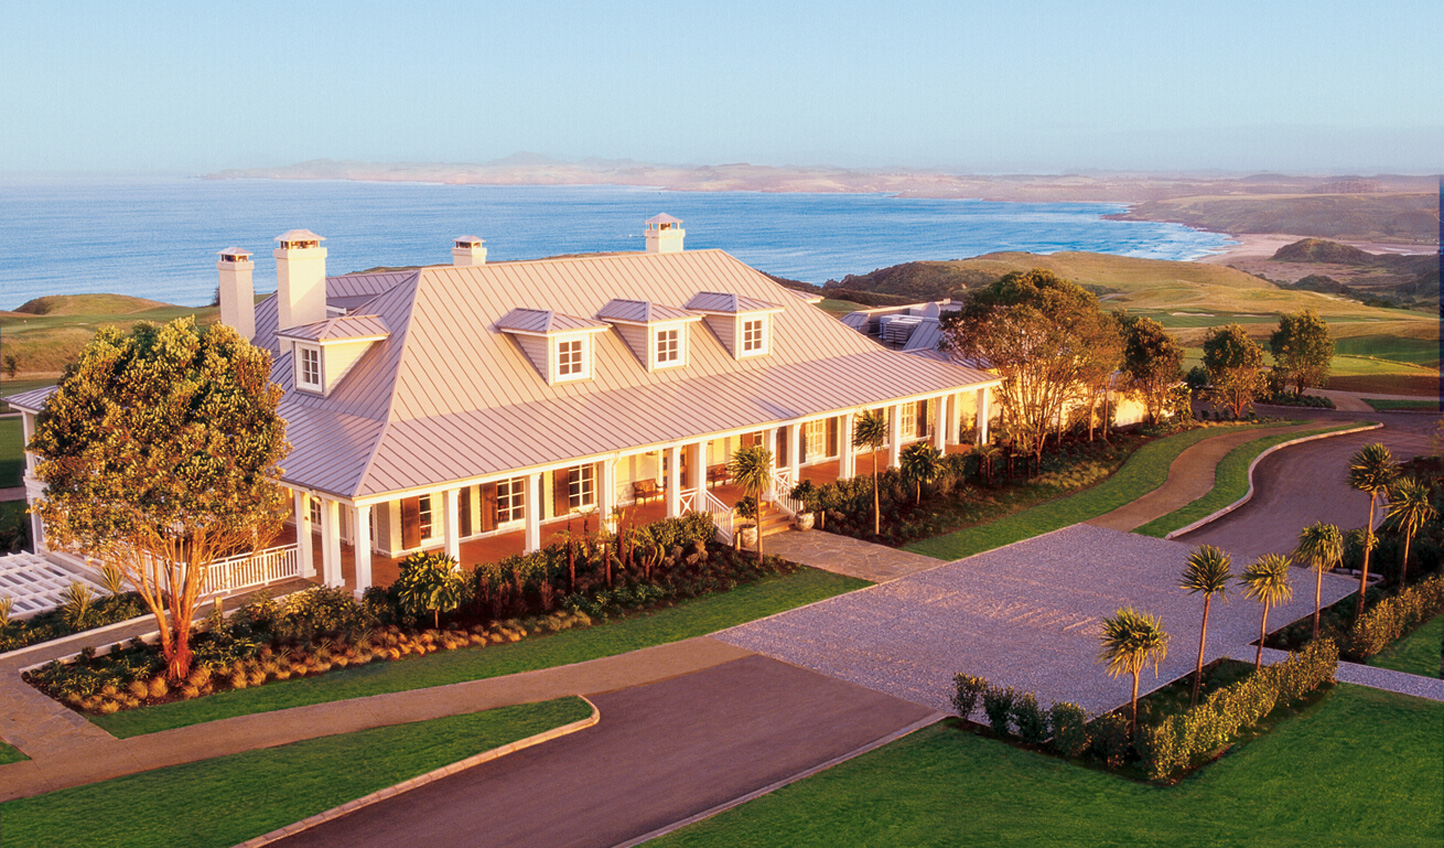 End on a high with a stay at the luxurious Kauri Cliffs